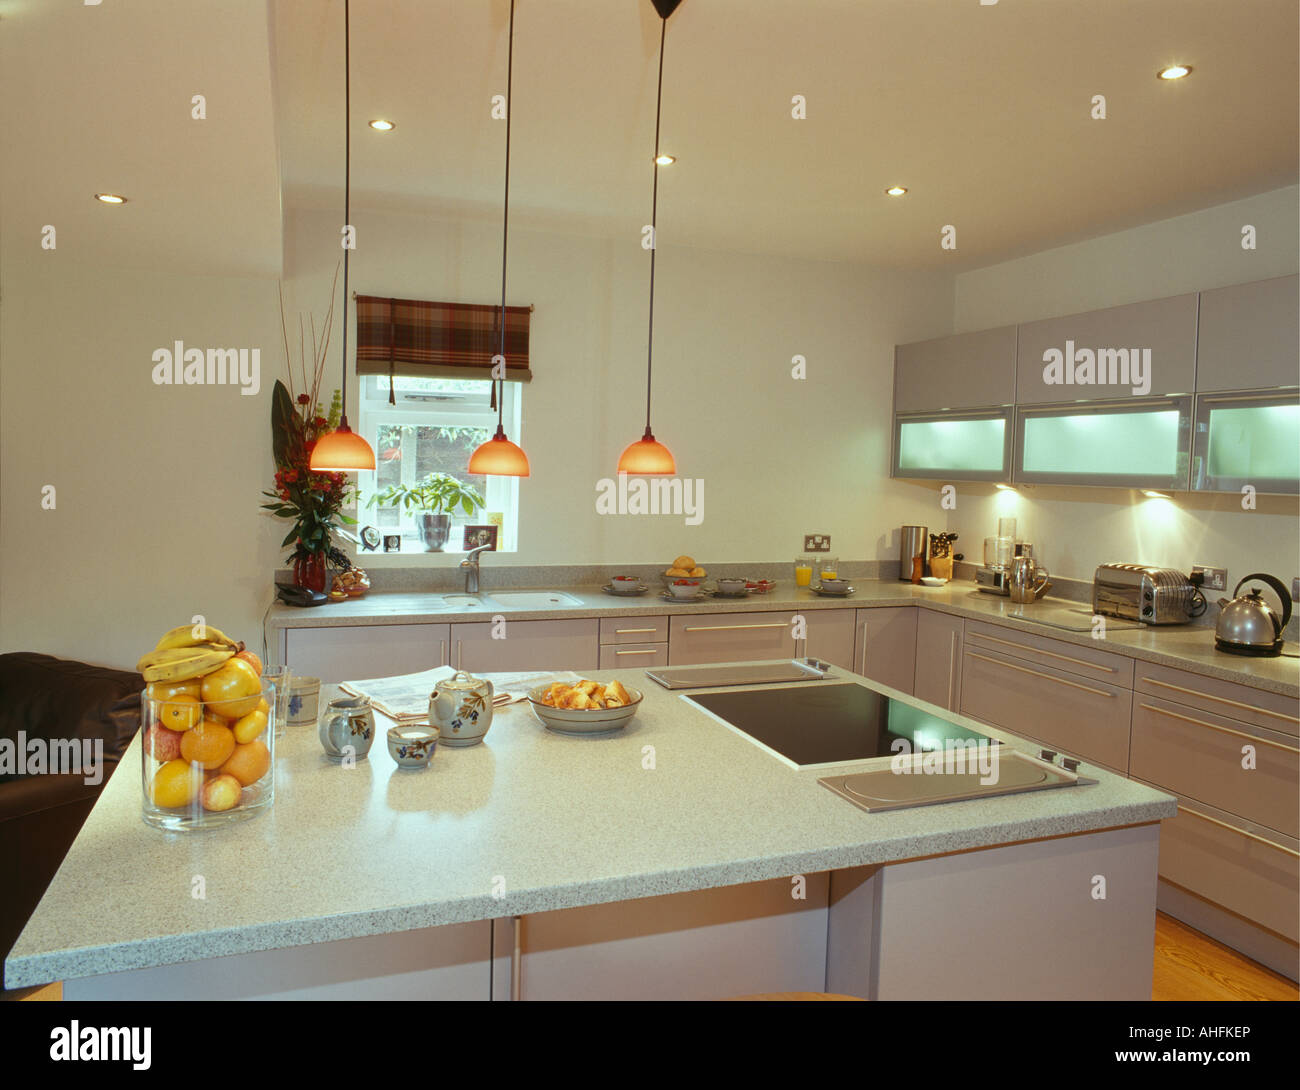 Hanging Kitchen Lights Over Island: Pendant Lights Over Island Unit With Halogen Hob And